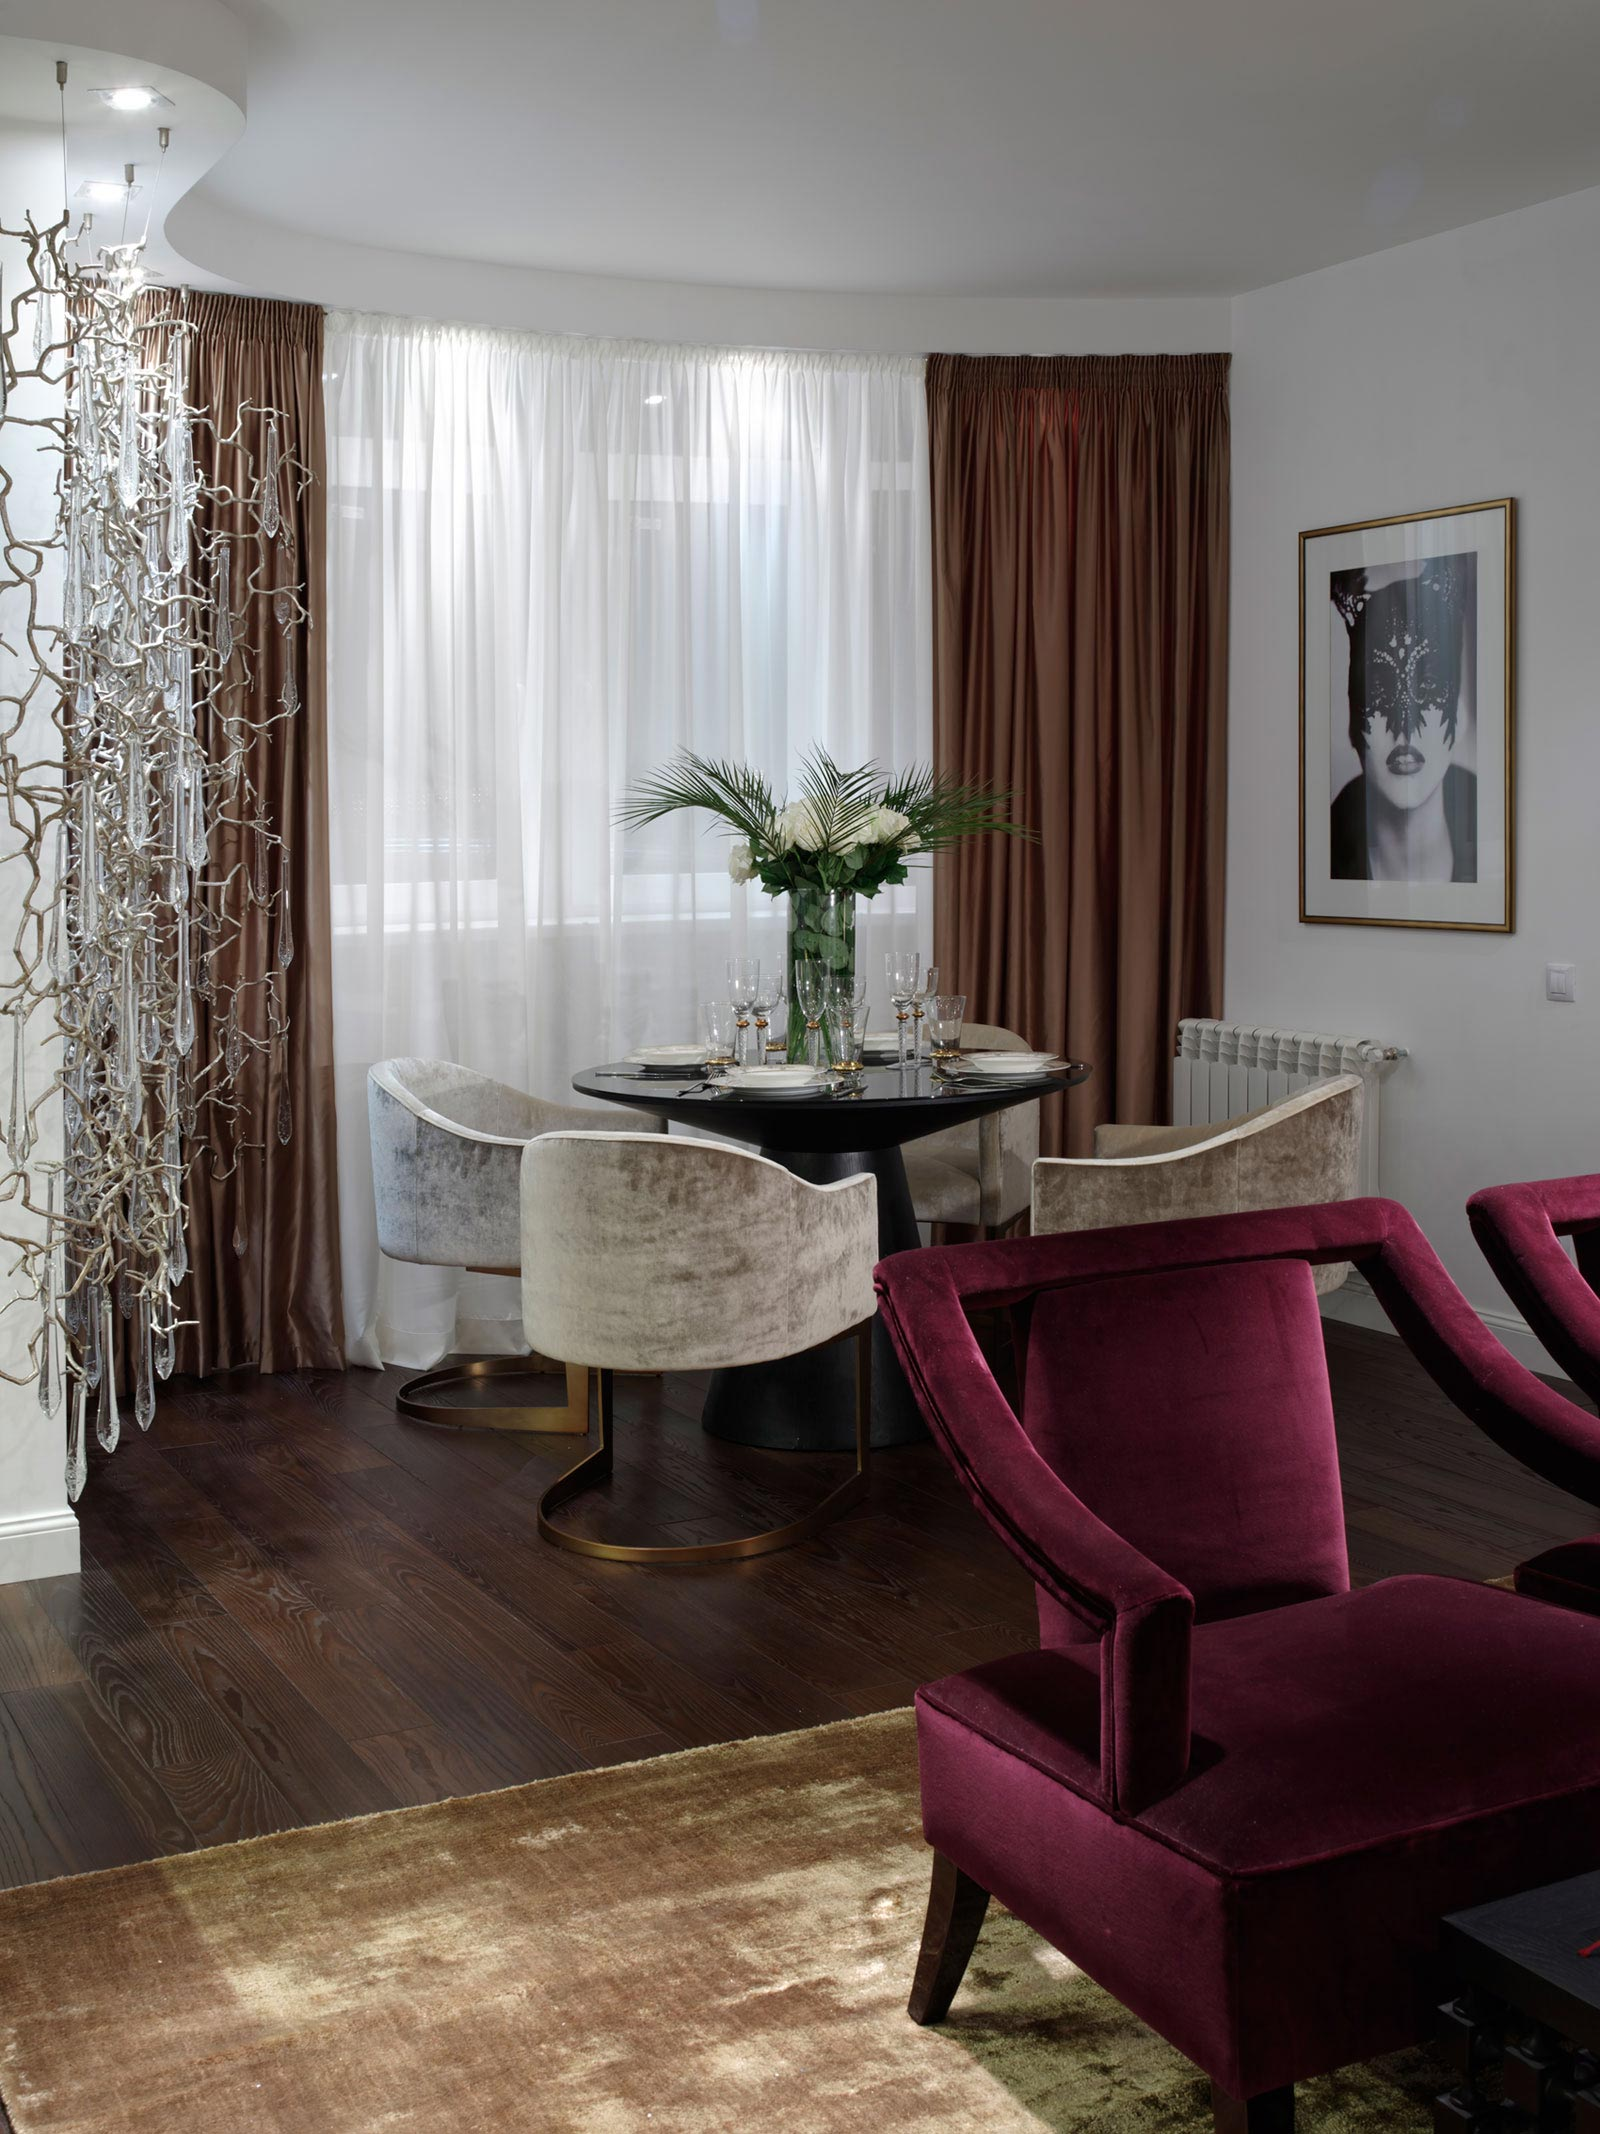 One Bedroom Apartment Decor Elegant One Bedroom Apartment In Kiev By Absolute Interior Decor